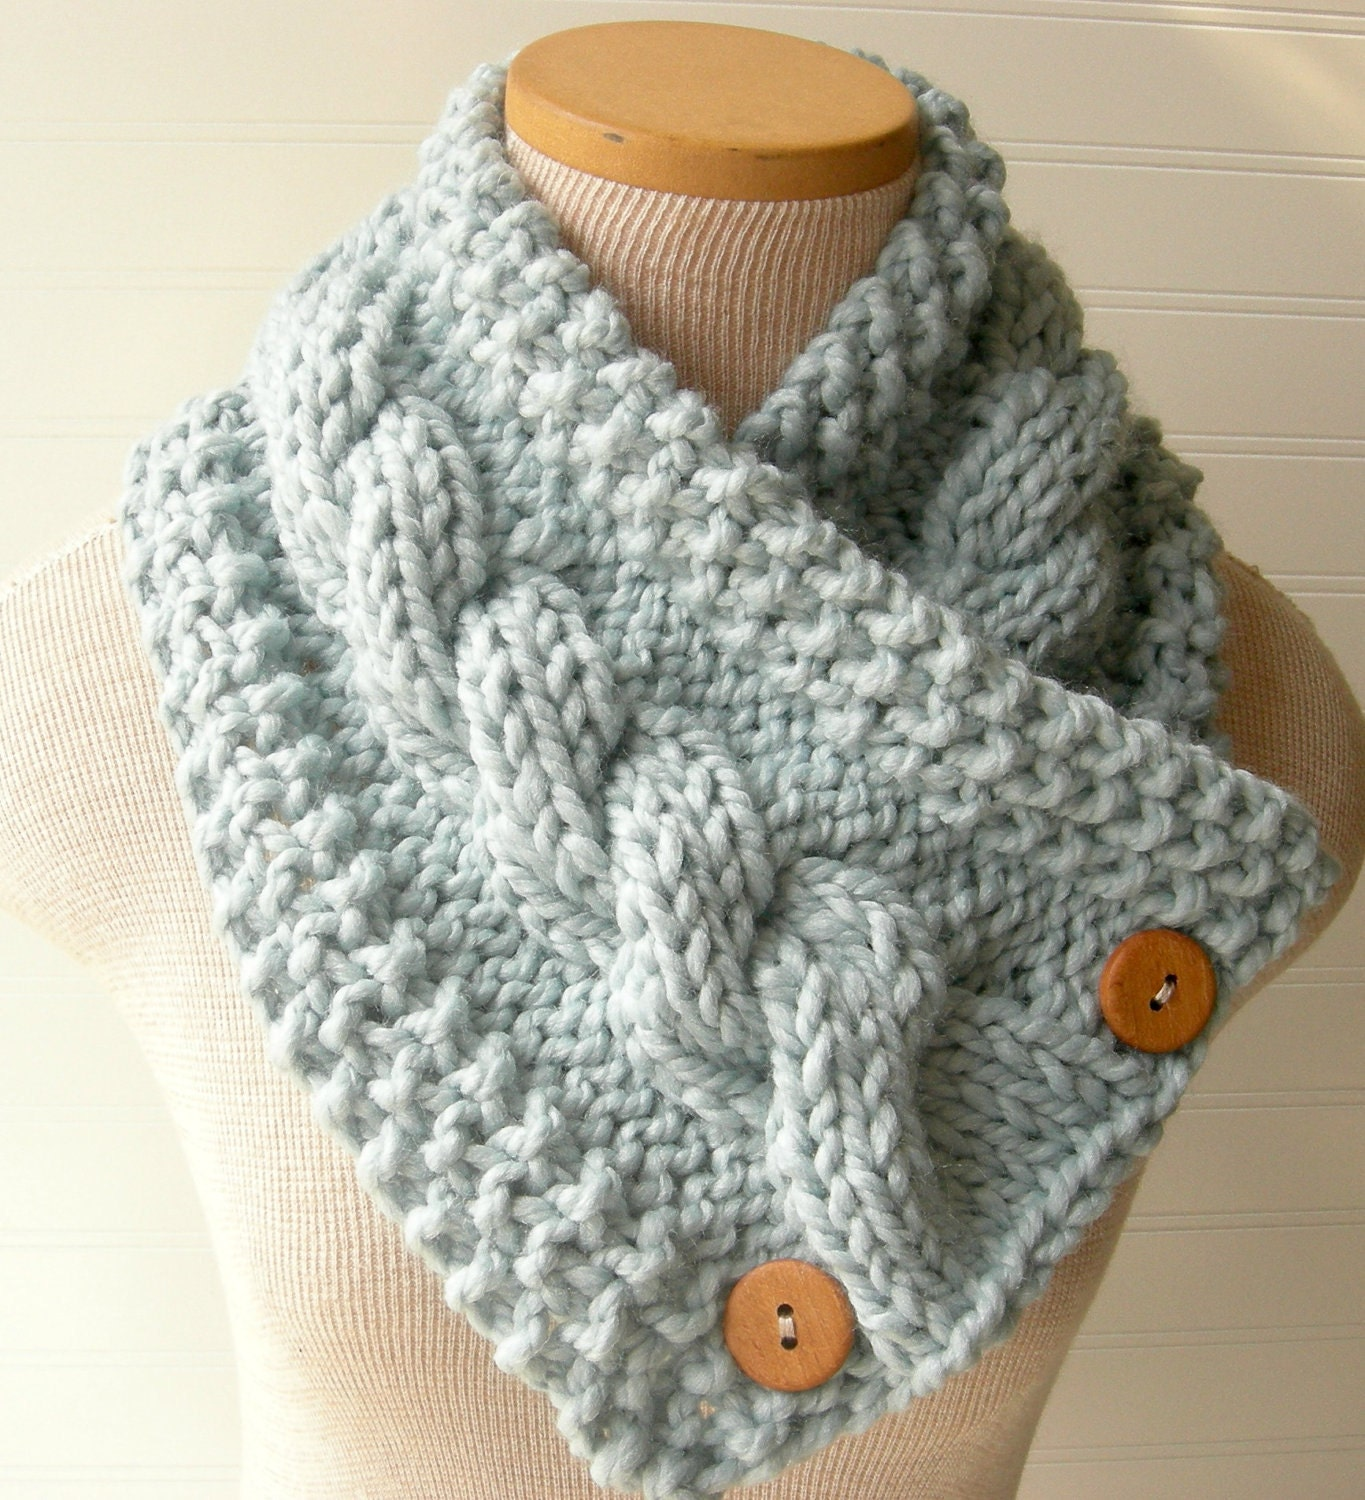 Free knitting patterns are great when you can use them to make knit scarves. These free knitting patterns for scarves will have you bundled up for the cold winter season. This Asymmetrical Stripey Scarf is the perfect scarf knitting pattern for More (Votes) Amethyst Lacy Knitted Scarf. This Amethyst Lacy Knitted Scarf is a beautiful.